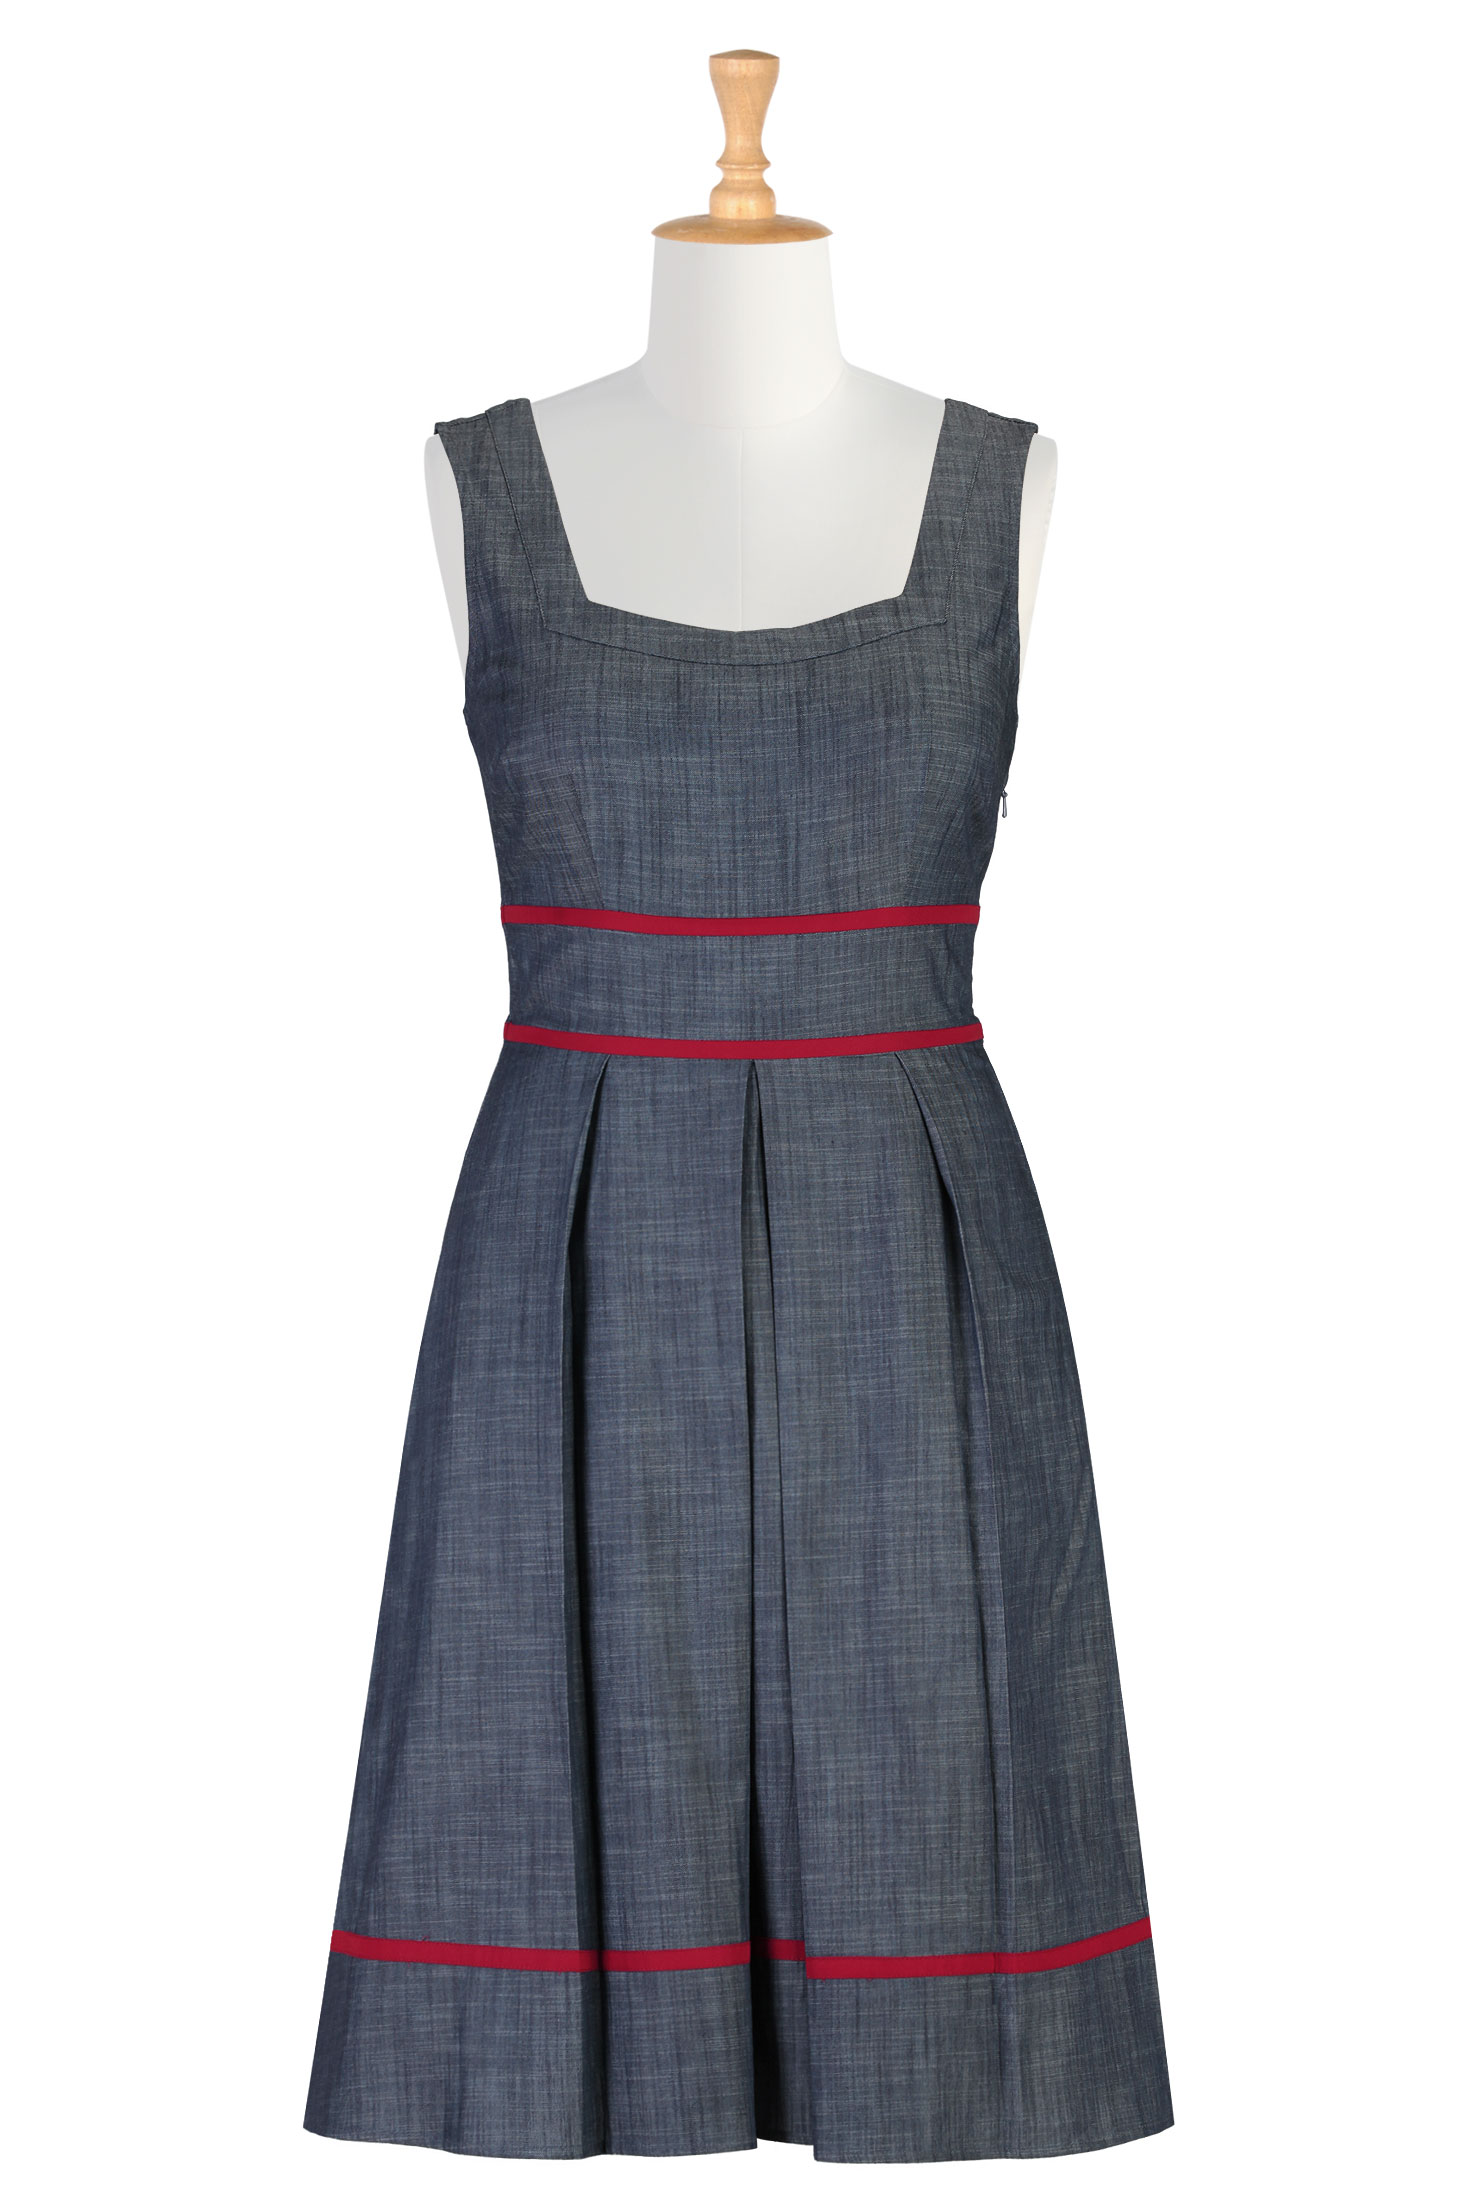 Eshakti shop with beth for Chambray dress